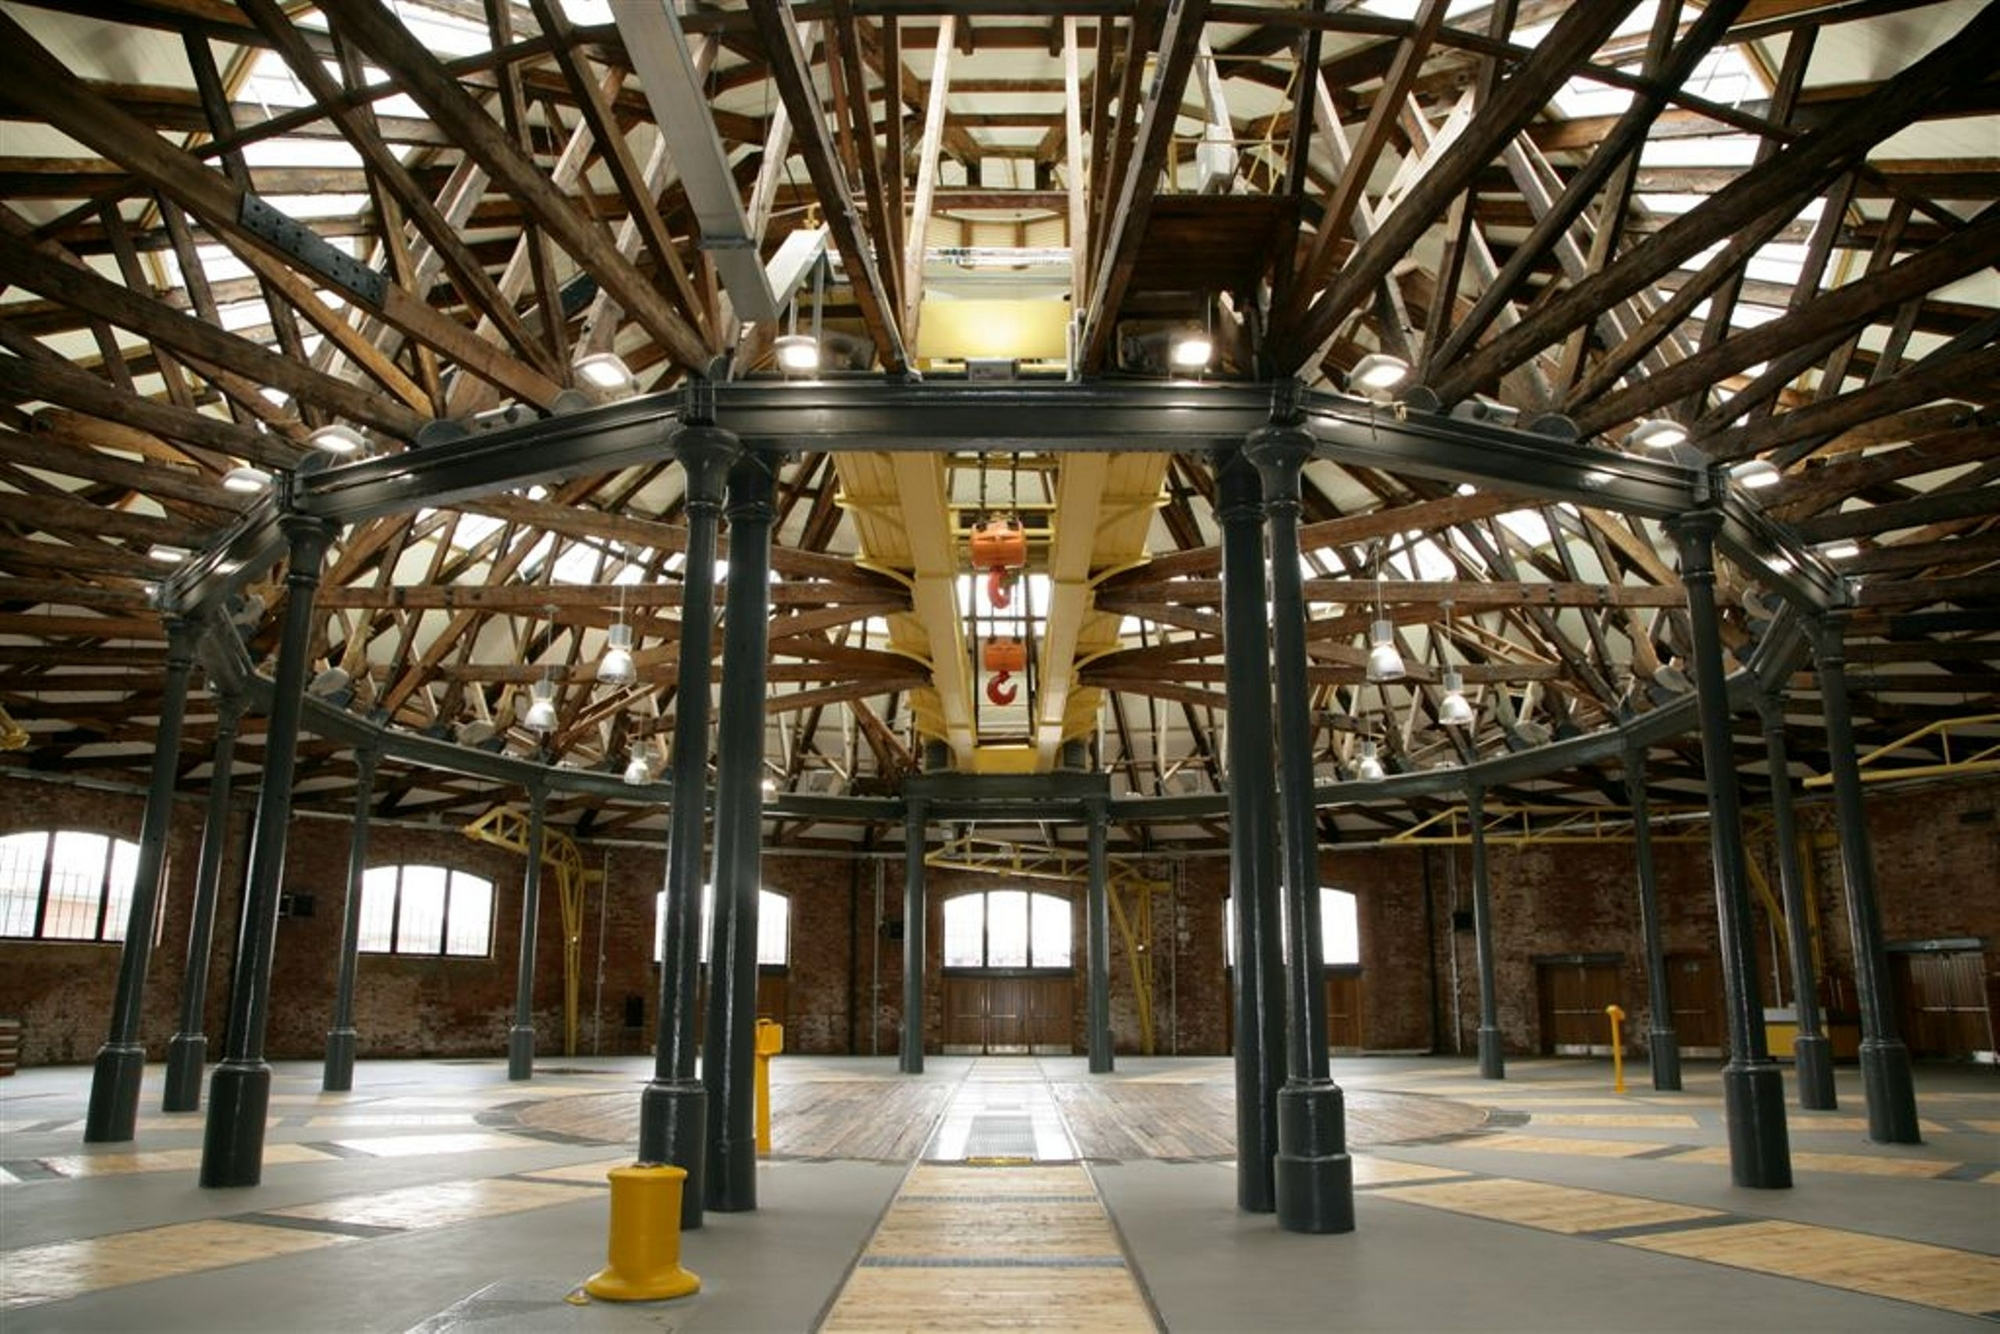 Roundhouse revival - Construction News